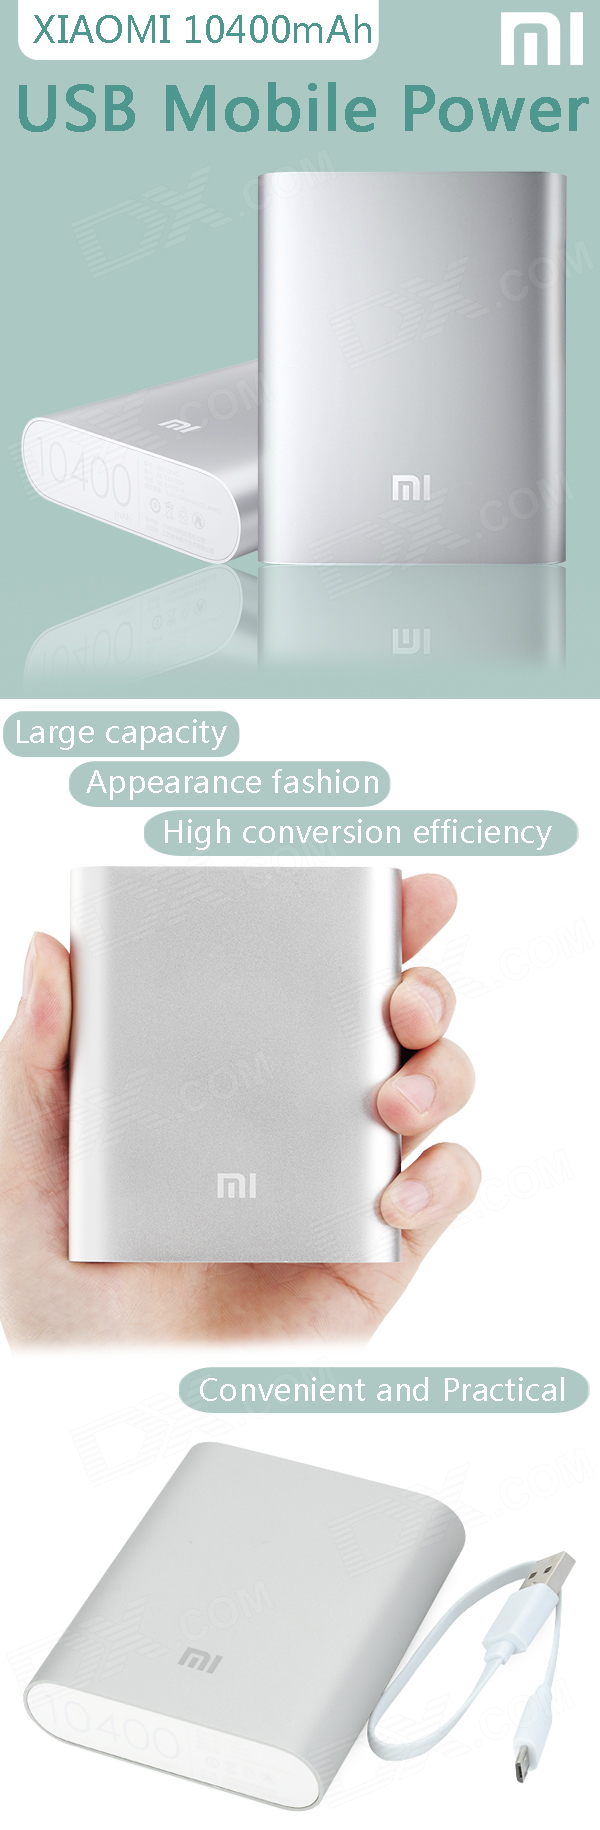 PowerBank XIAOMI 10400mAh 002